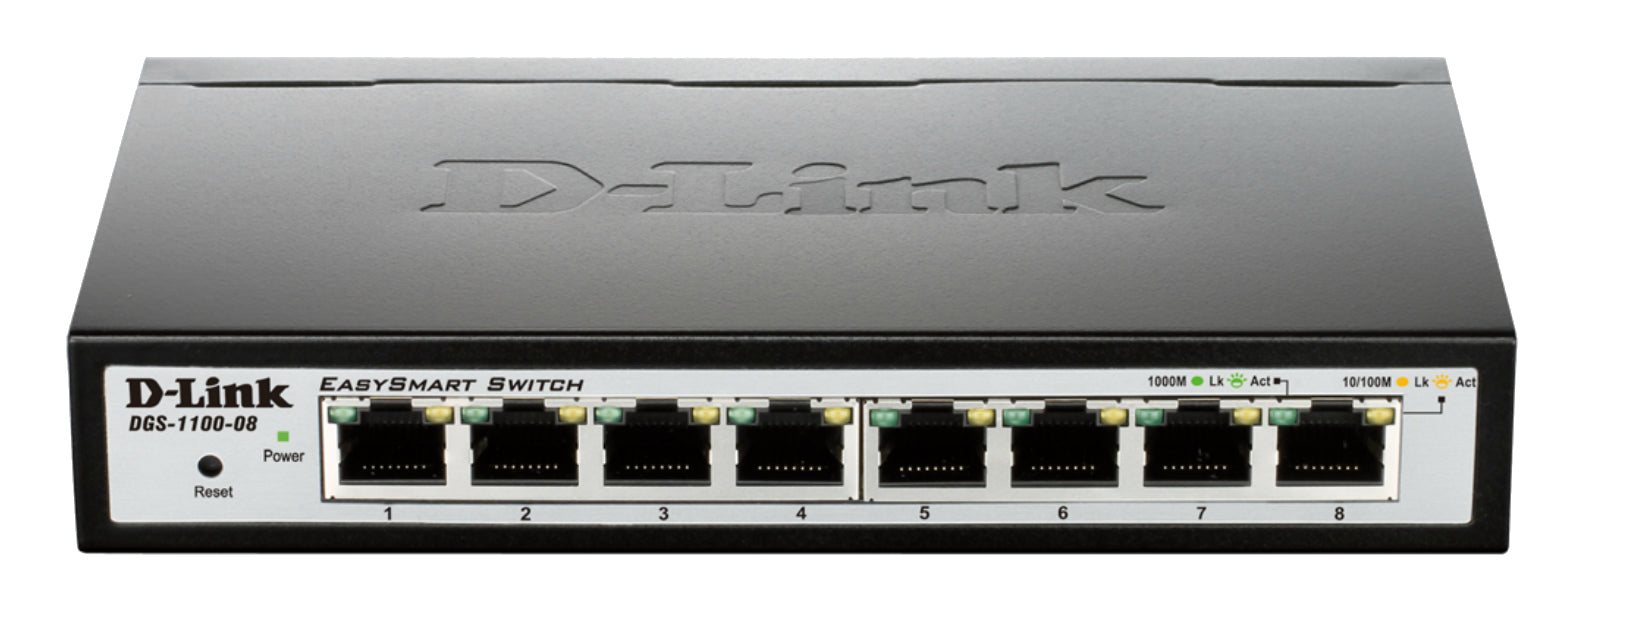 D-Link DGS-1100-08 network switch Managed L2 Gigabit Ethernet (10/100/1000) Black